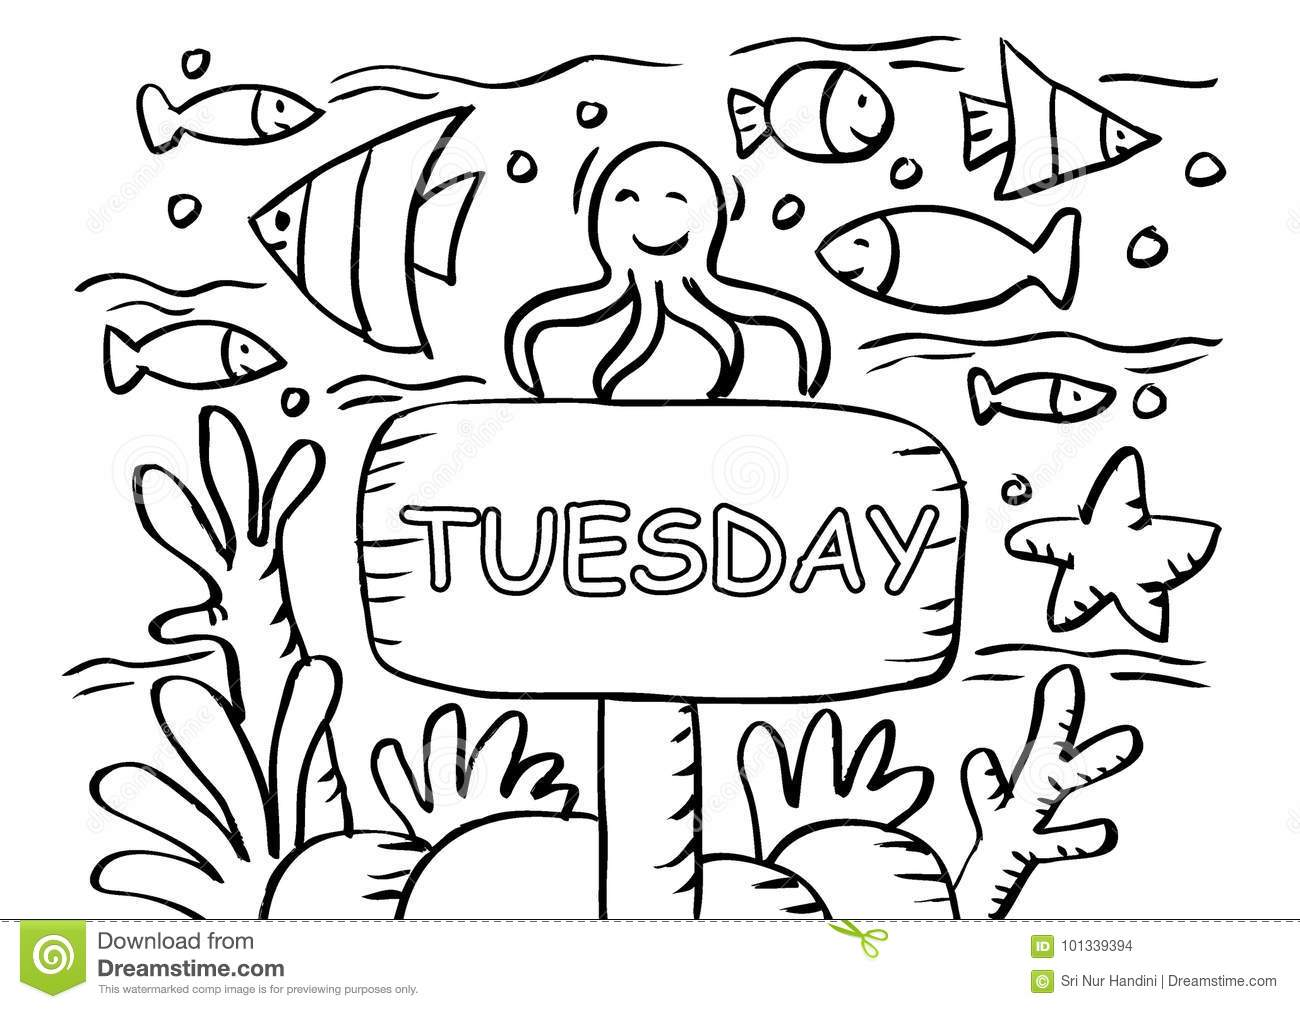 Cartoon Tuesday Coloring Page Stock Illustrations 6